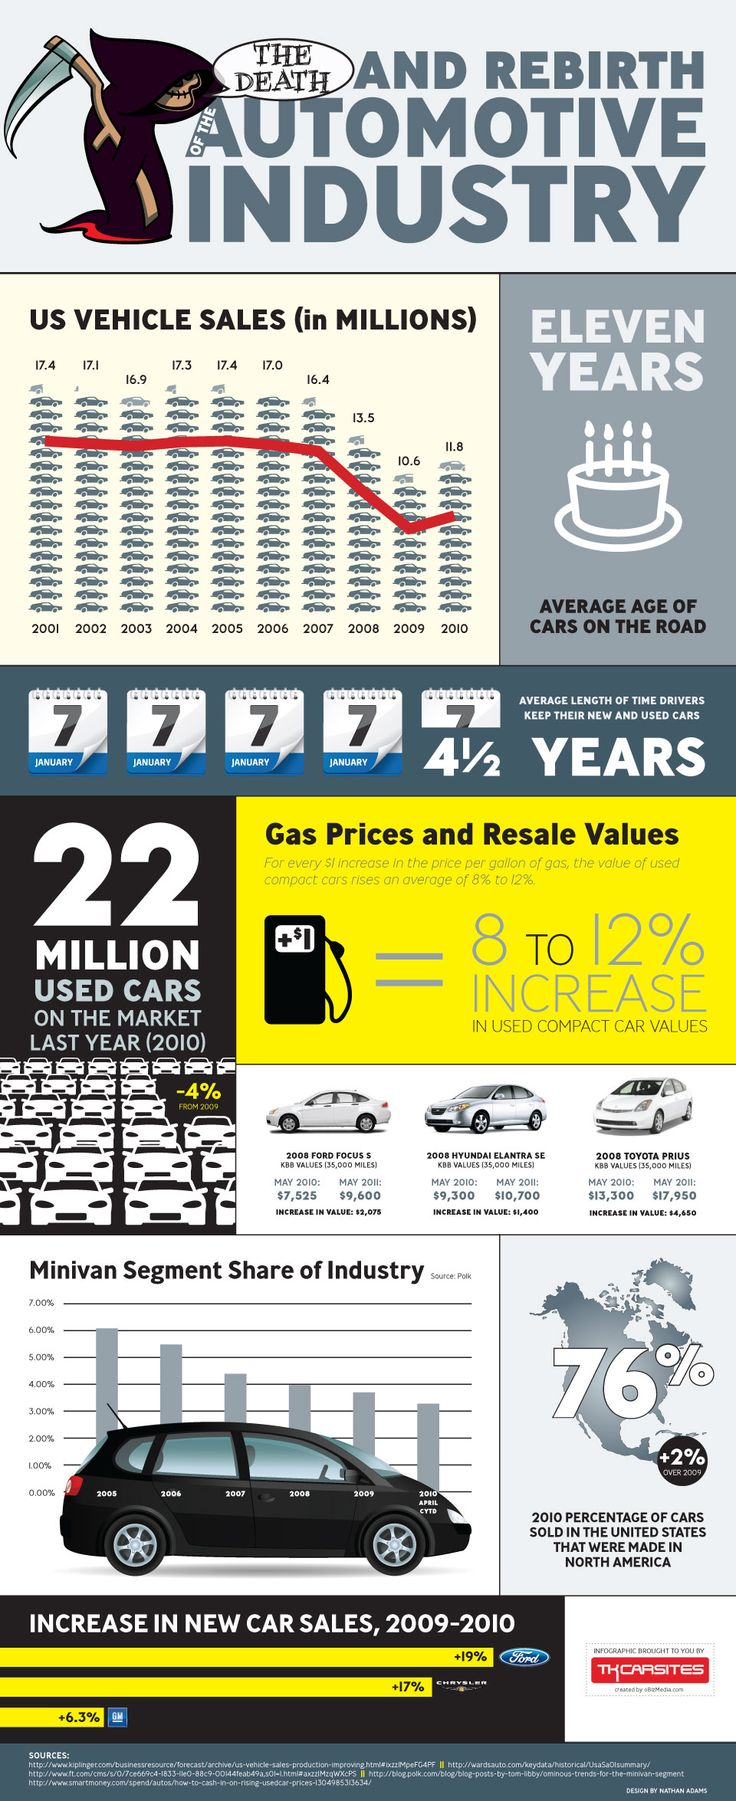 The Automotive Industry via Social News Watch #infographic #automotive #design